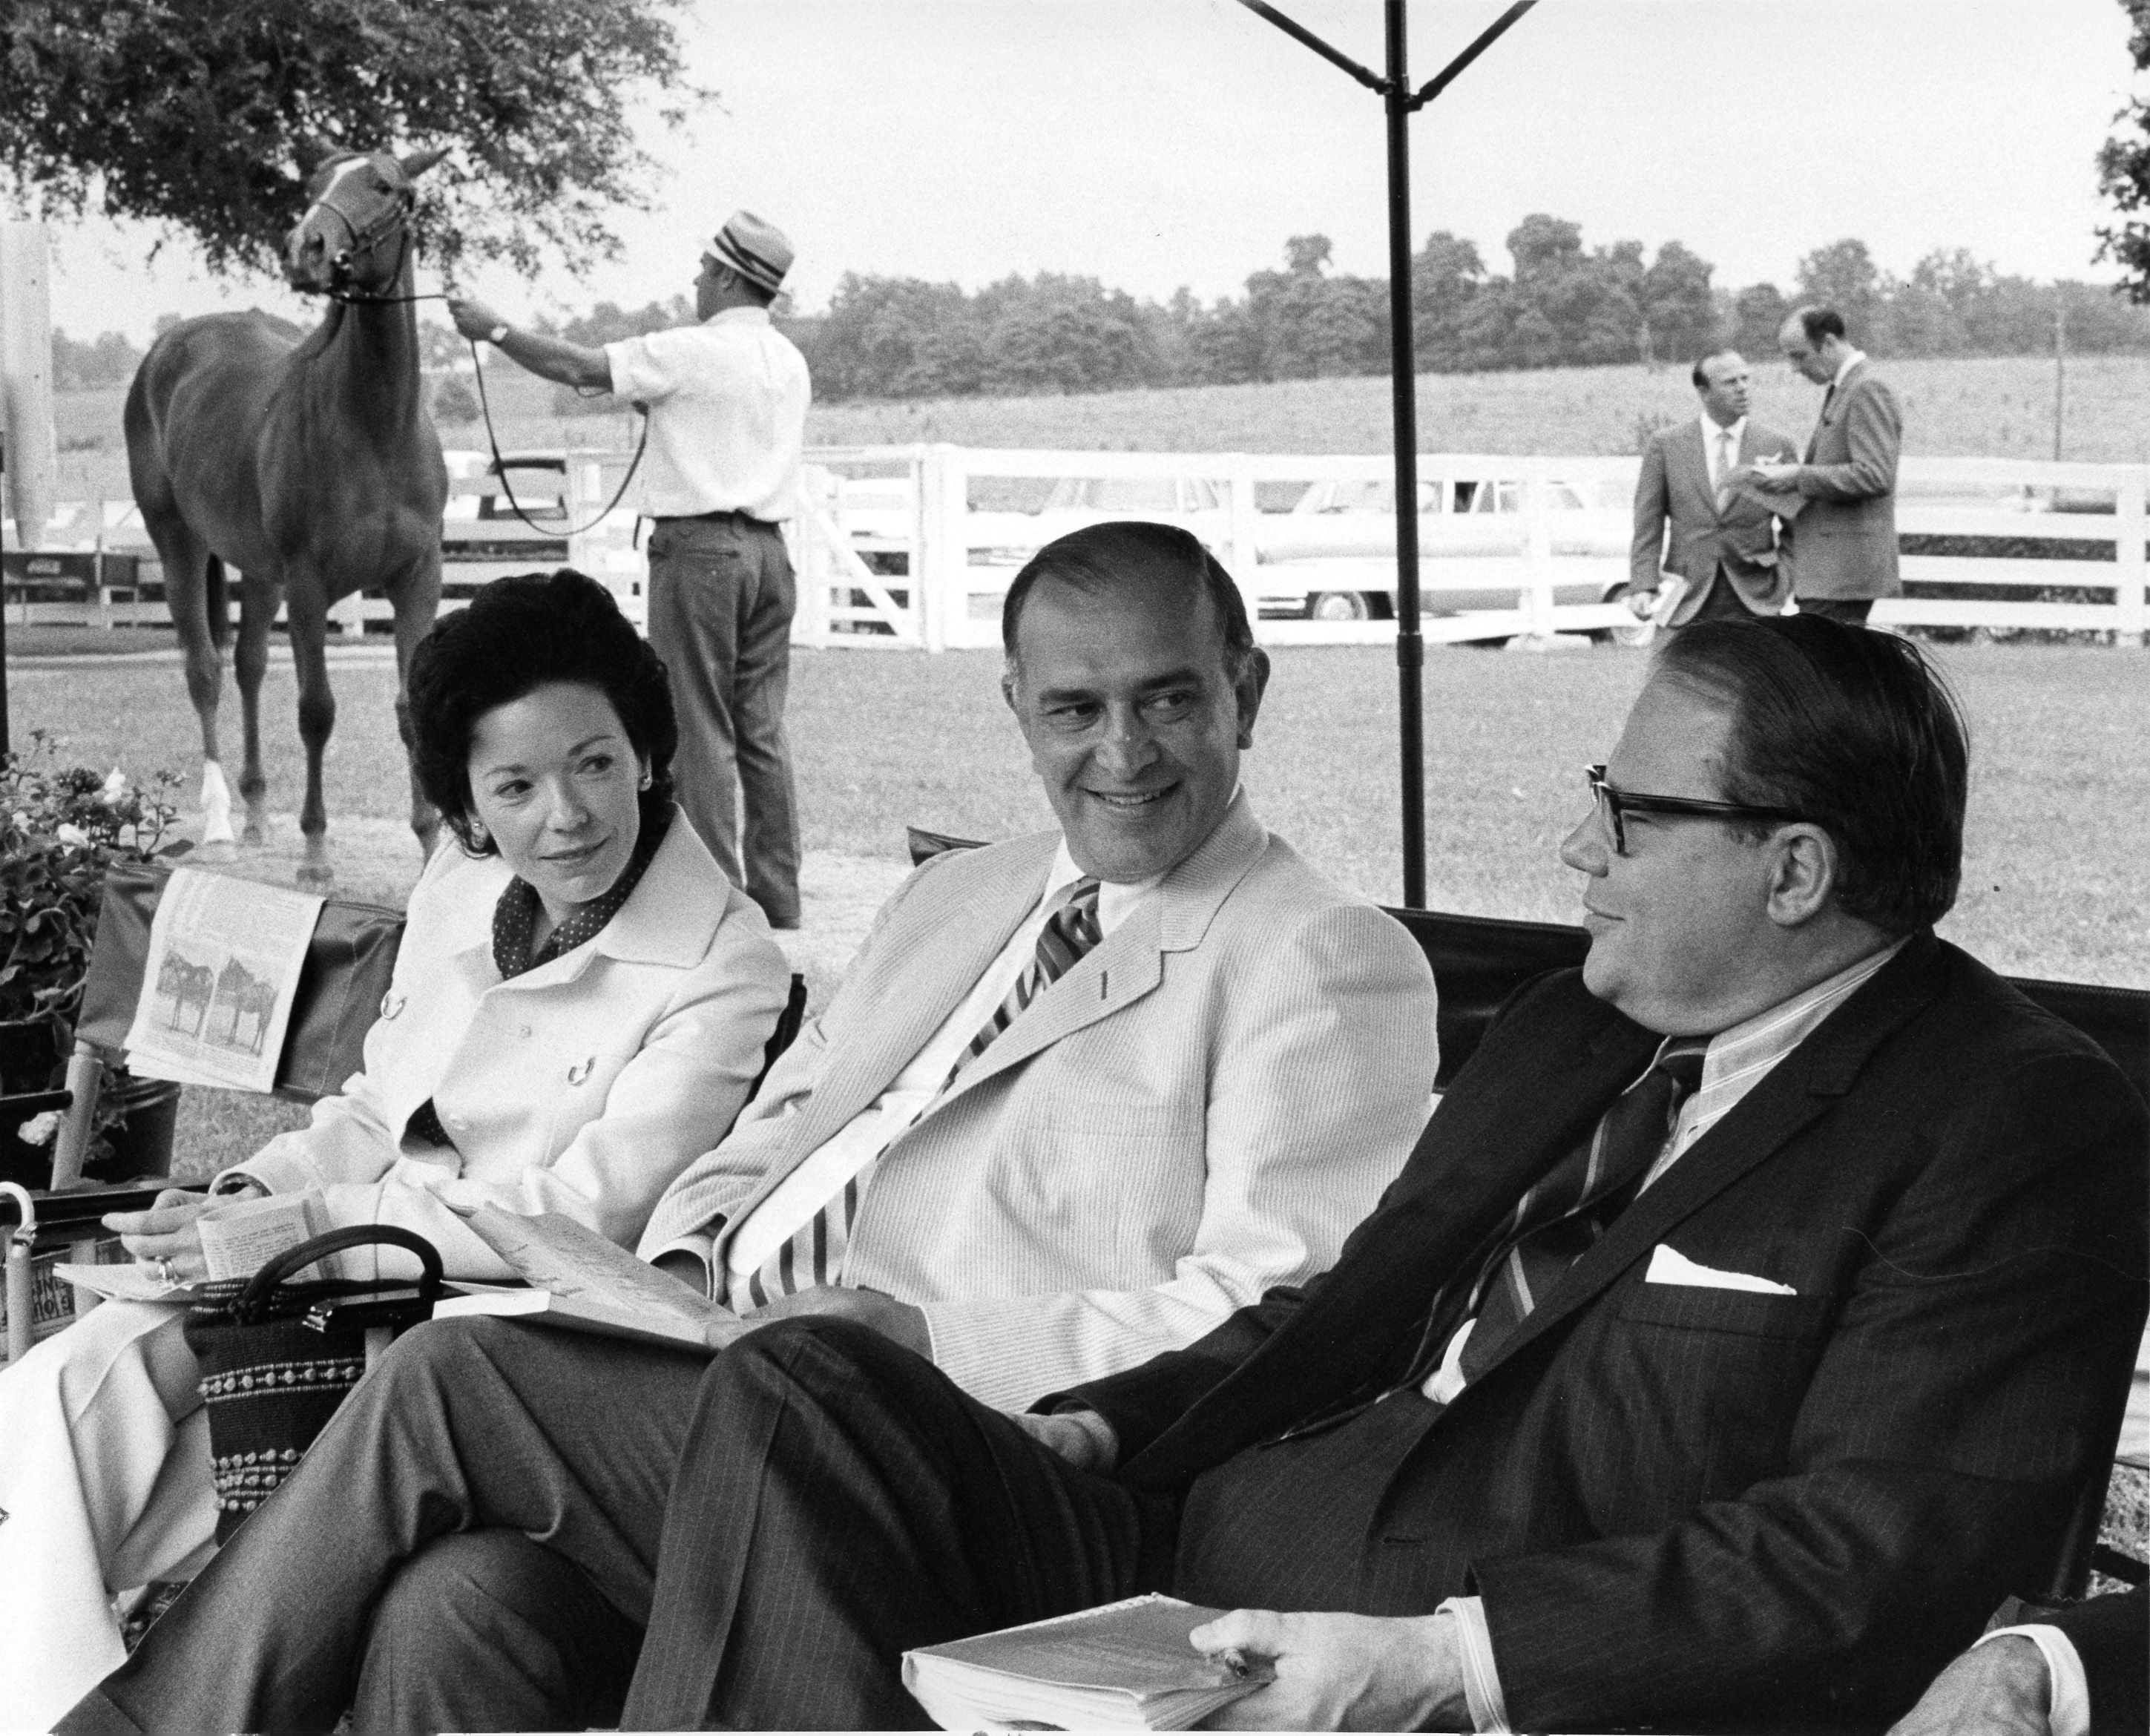 Mr. and Mrs. Nelson Bunker with John Gaines (center) (Keeneland Association)